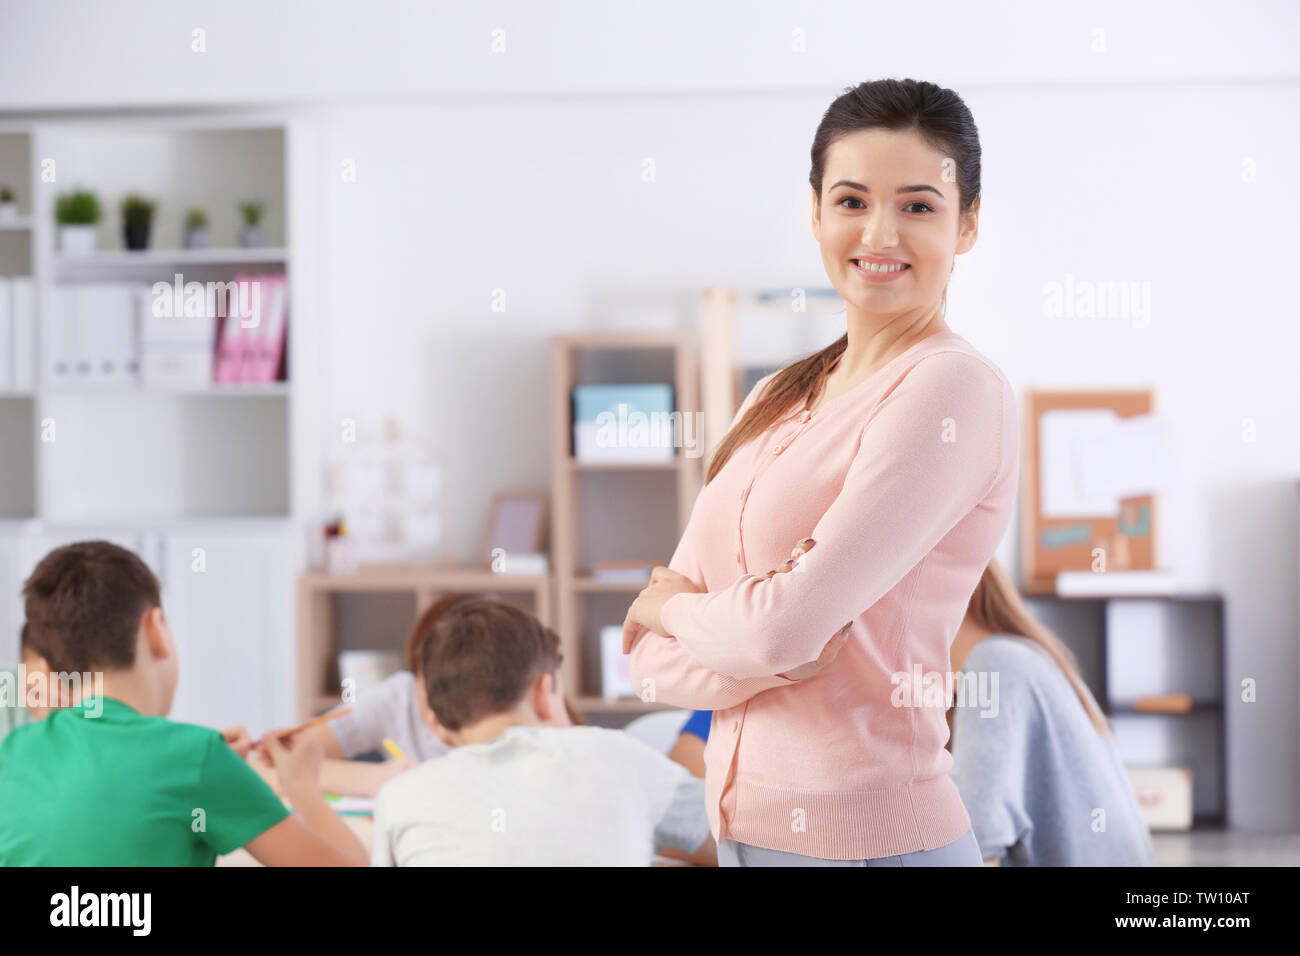 Beautiful teacher in classroom during lesson - Stock Image